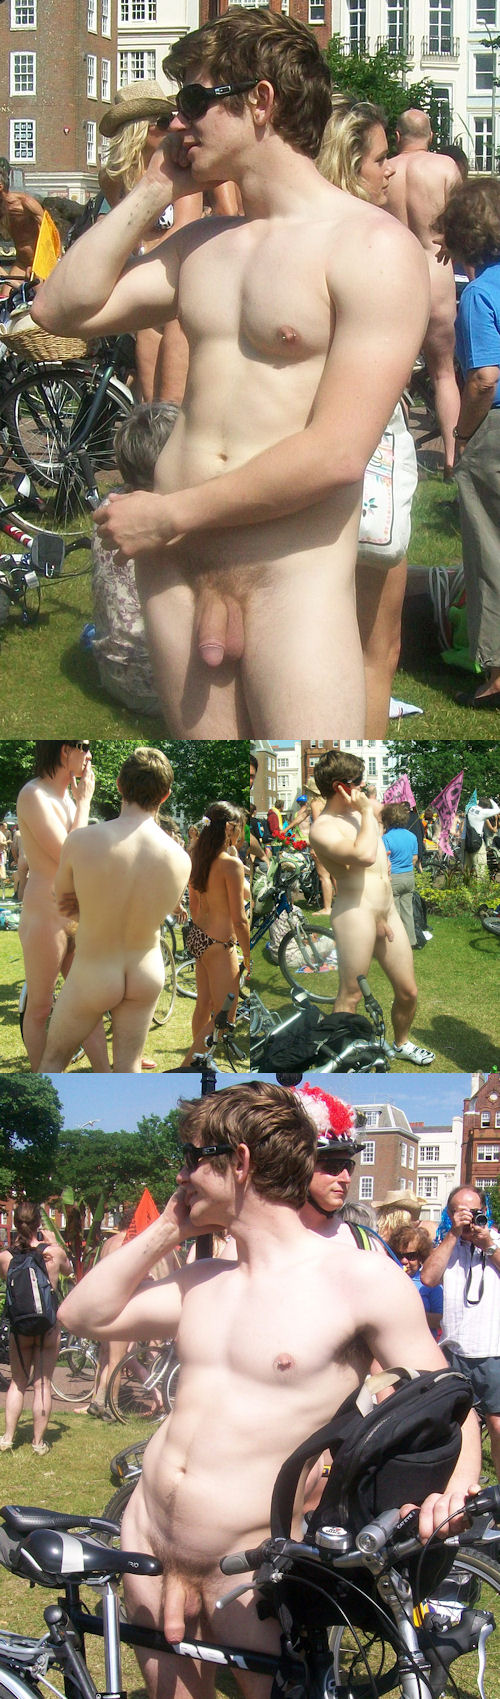 wnbr0630b.jpg